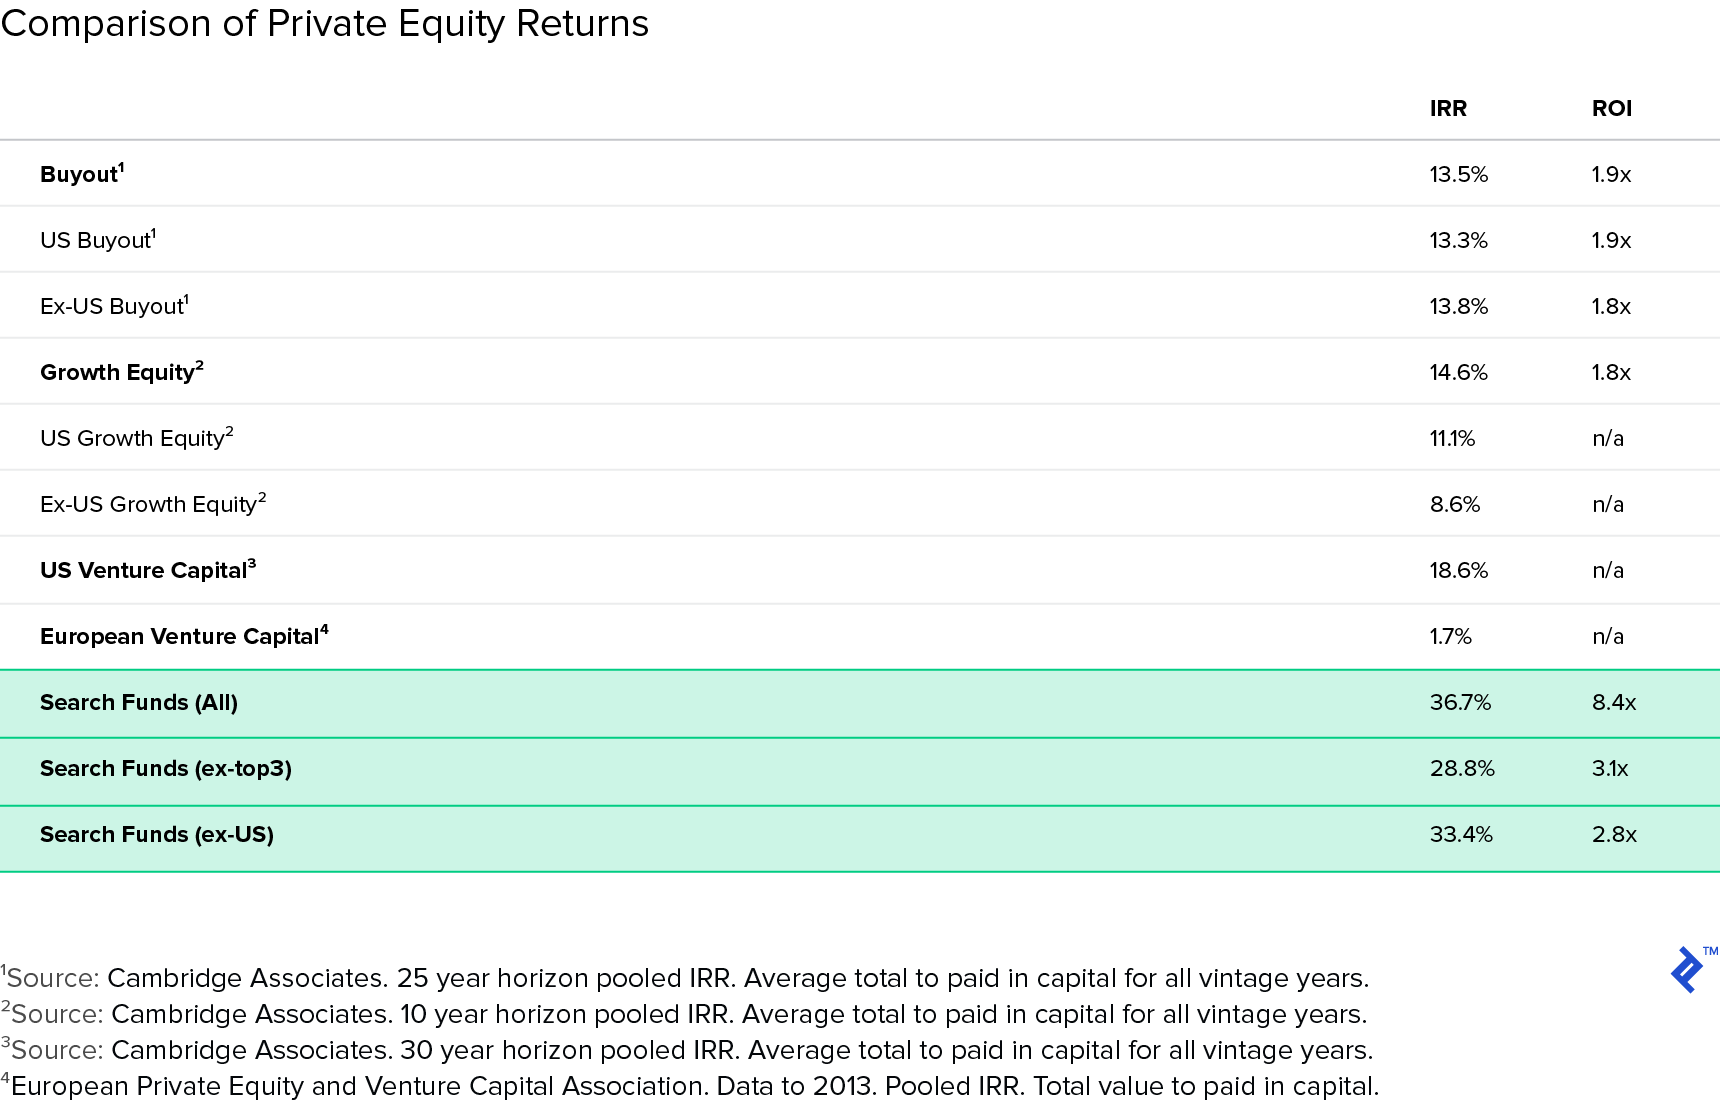 Comparison of Private Equity Returns